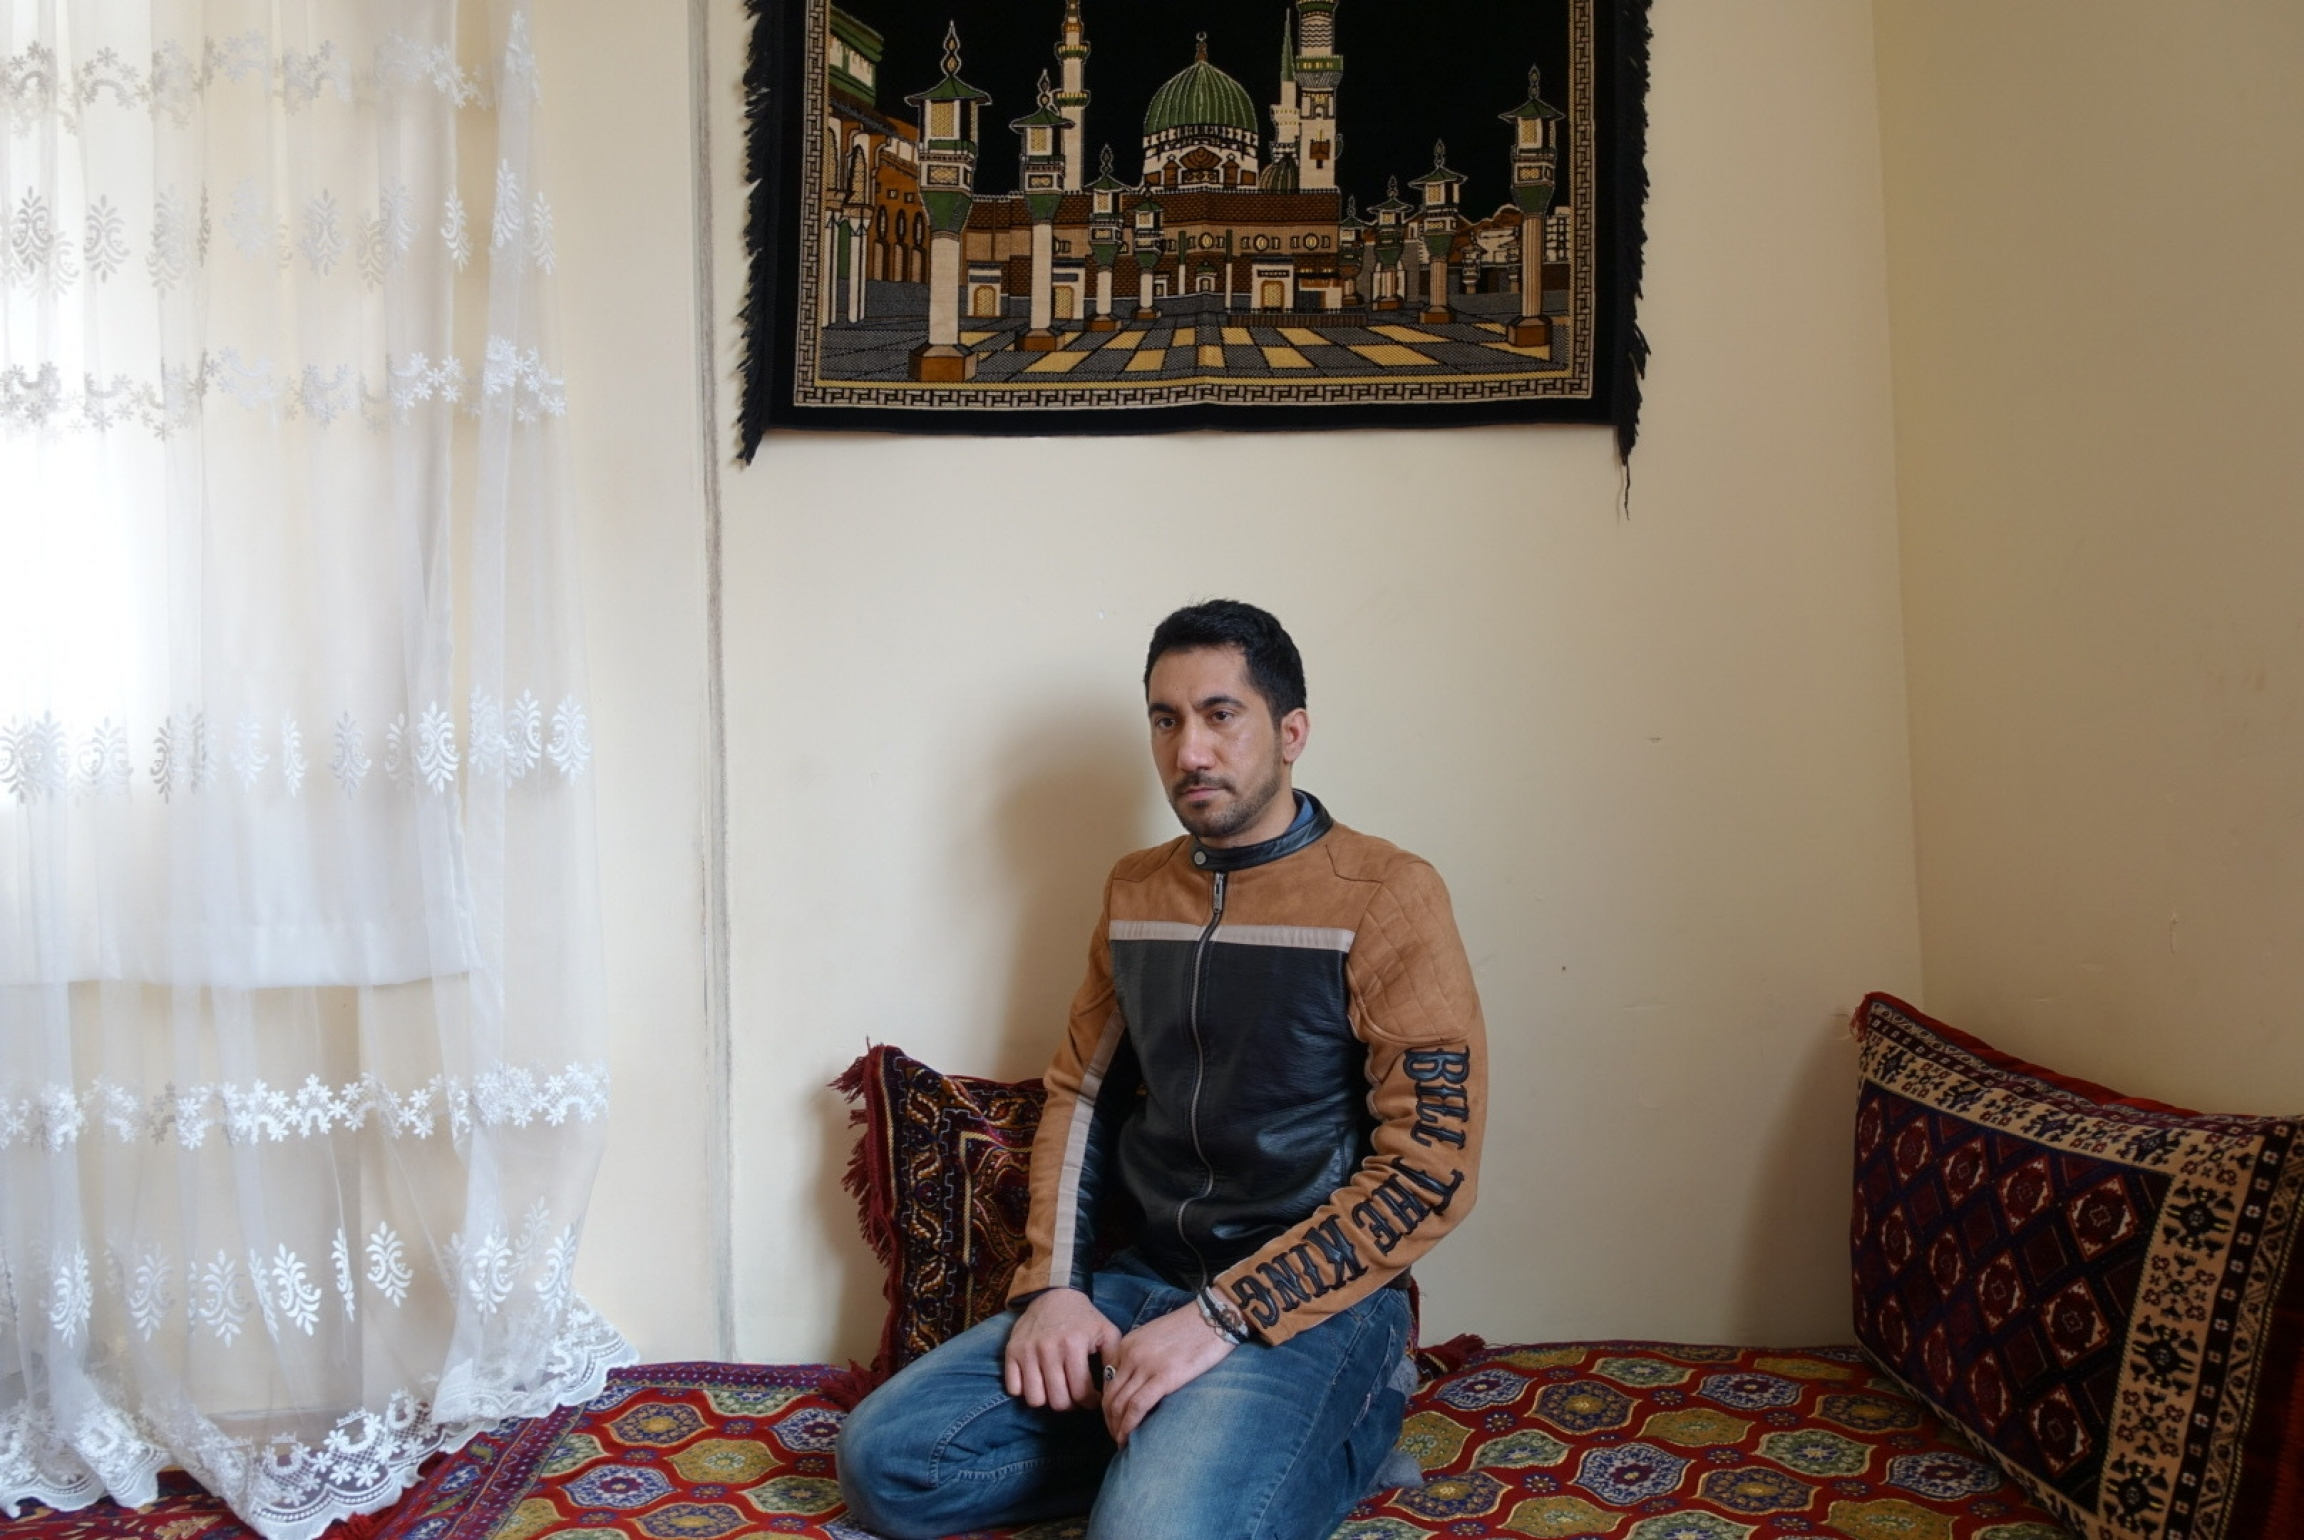 Jamil, 25, worked as a tailor in Afghanistan. But the Taliban threatened him because he made clothes for women as well as men.